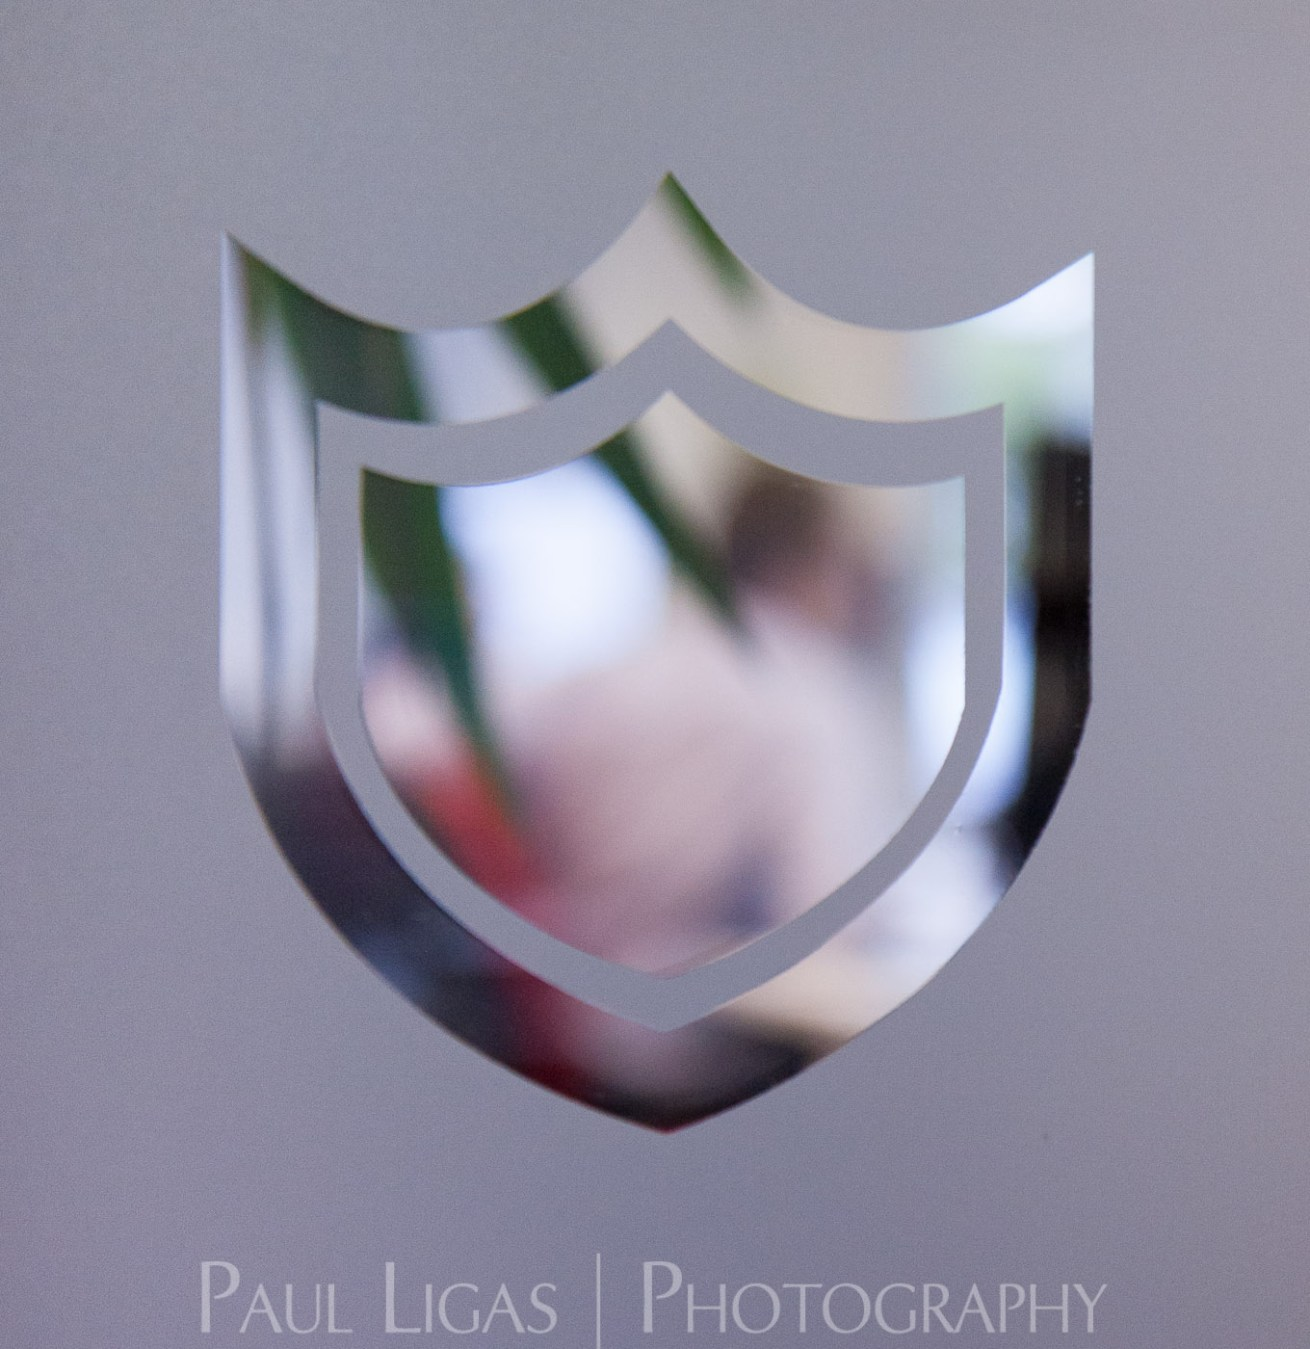 Create IT, Thatcham commercial photographer herefordshire photography 3333